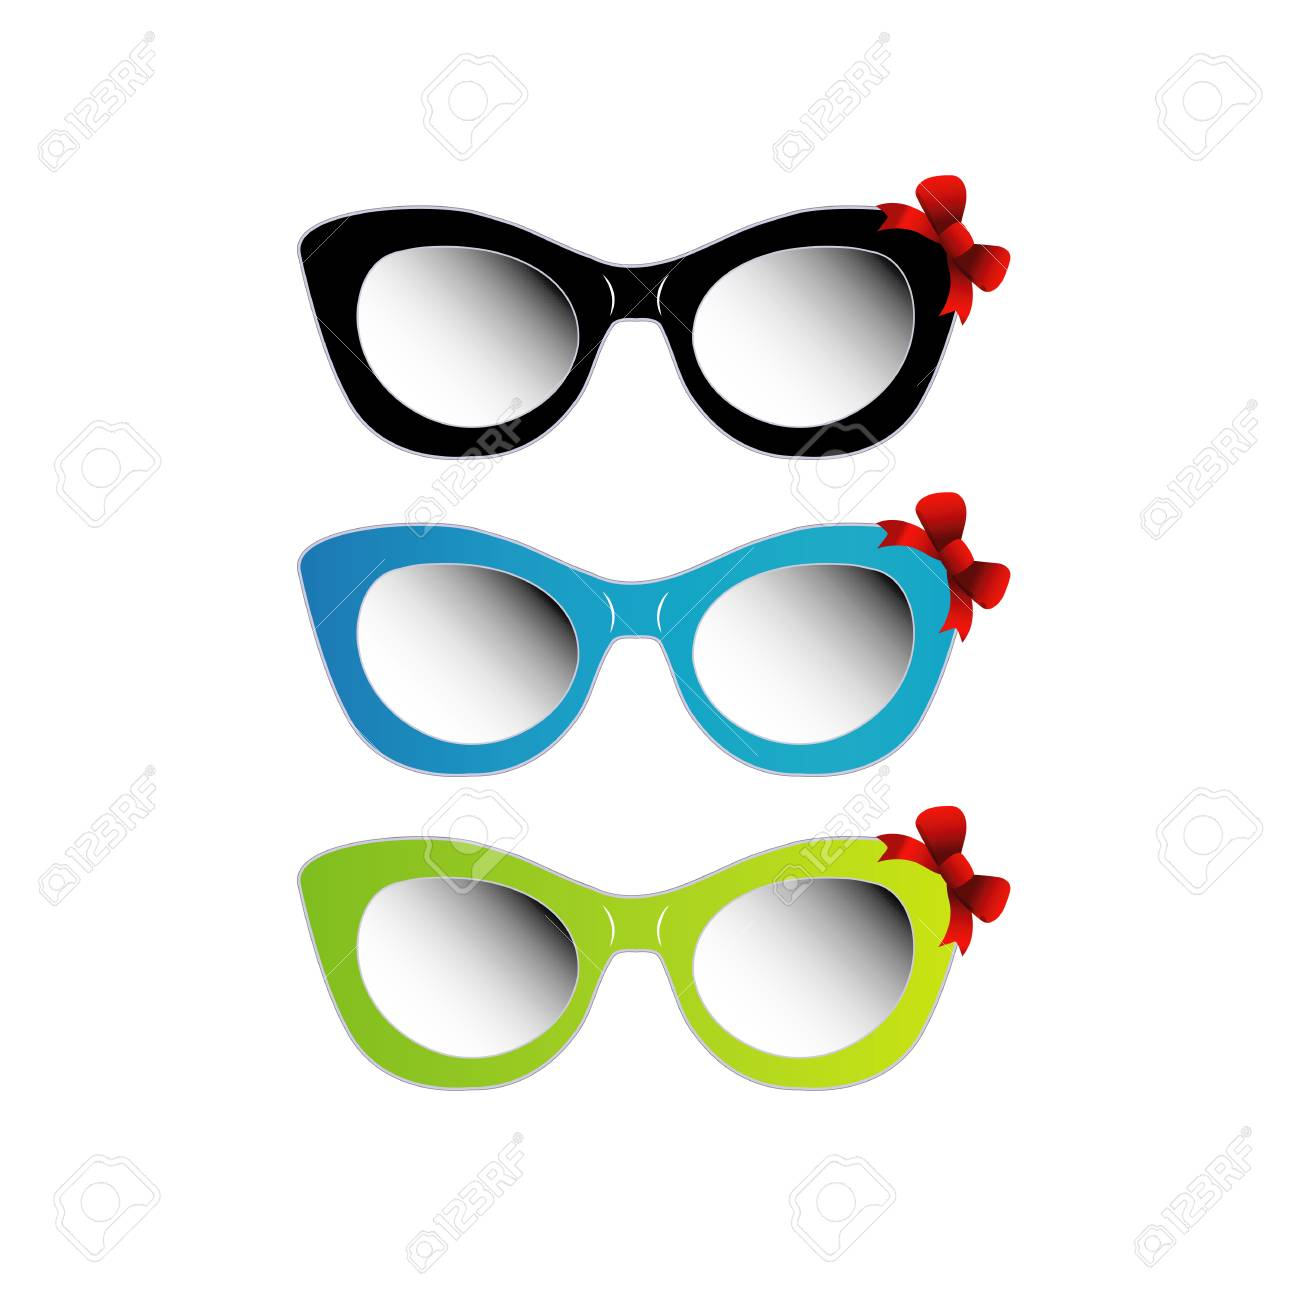 3ebe0f28f00 Colorful cat eye sunglasses Stock Vector - 26507906